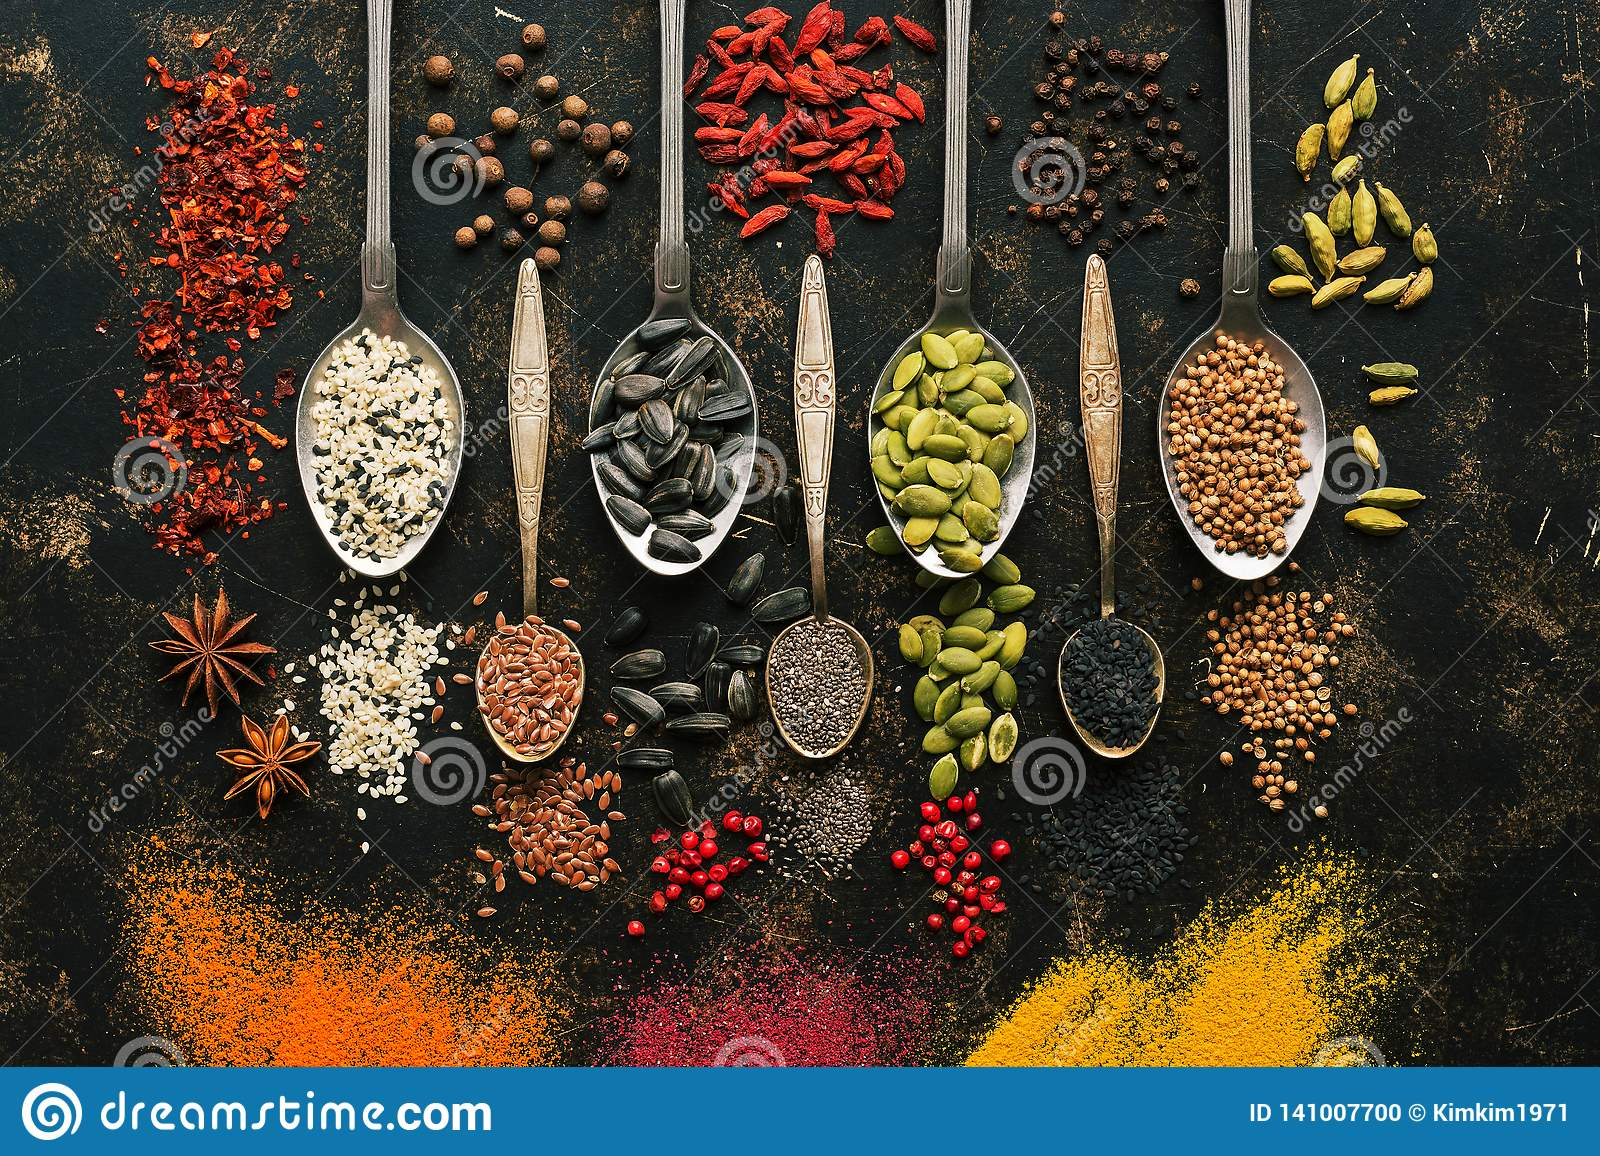 A set of varied seeds and spices in spoons on a dark background. Top view, flat lay. Multicolored spices